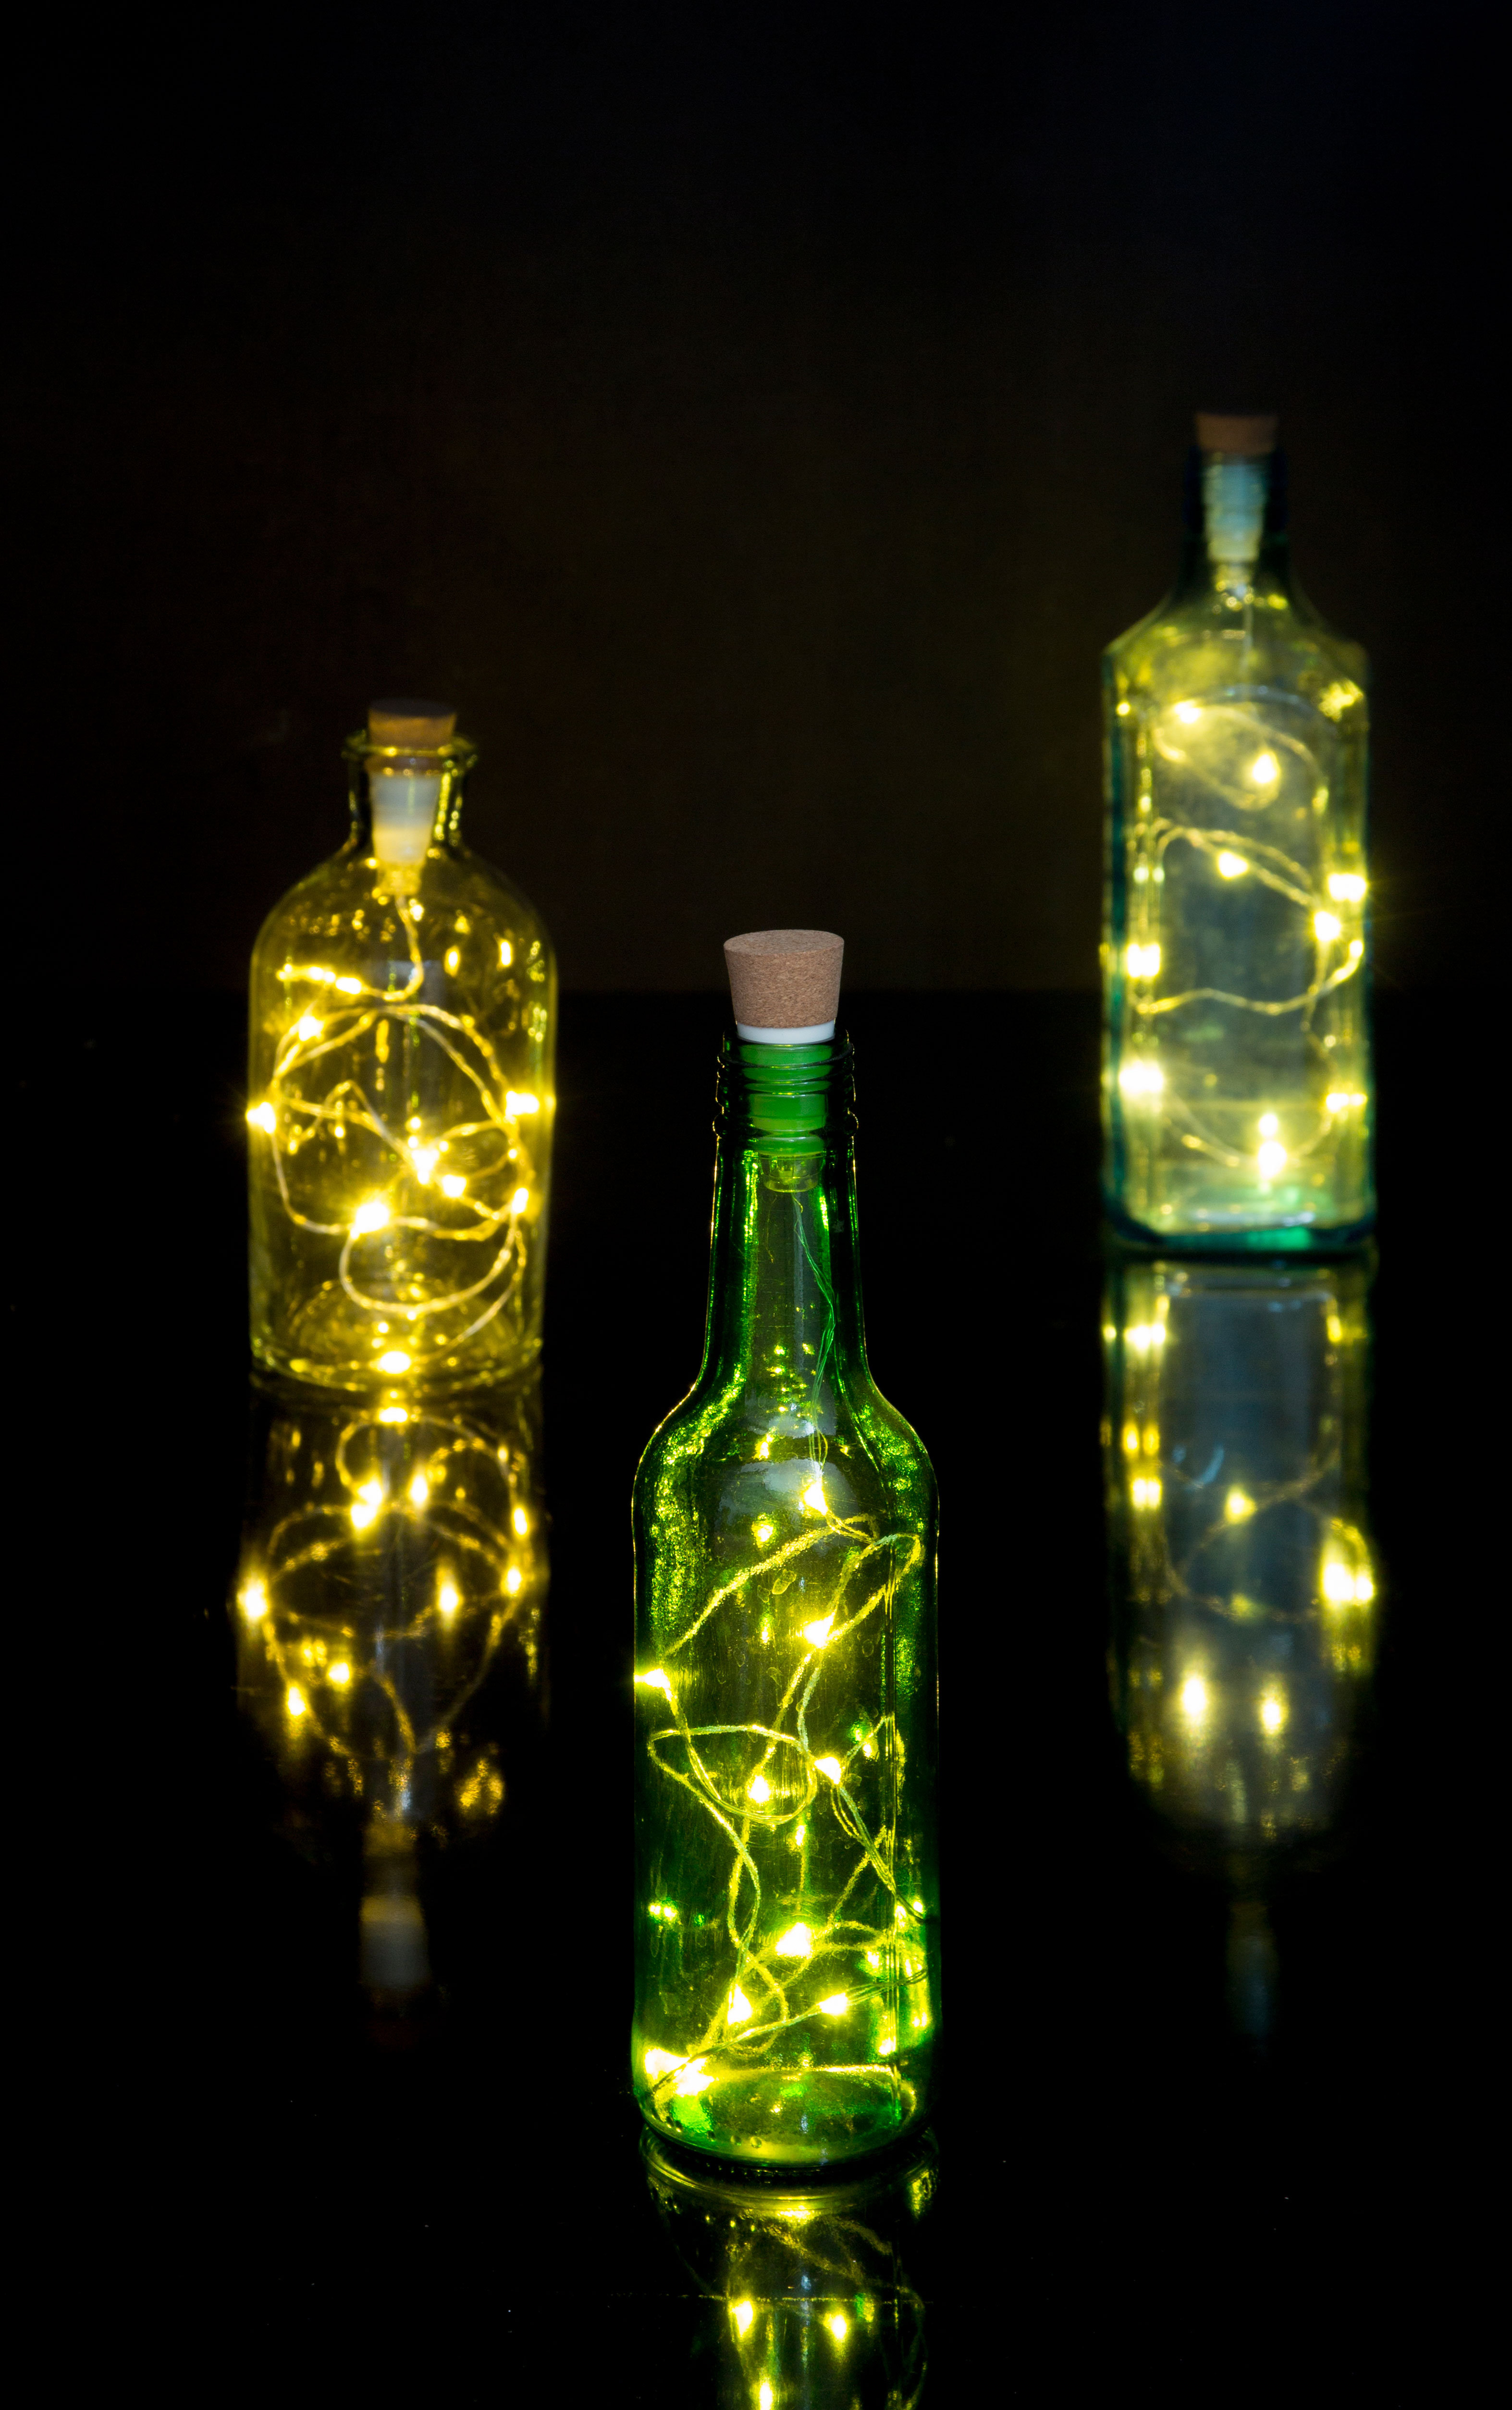 String Lights For Bottles : Bottle String Light Content Gallery : Rechargeable string of warm lights for any bottle